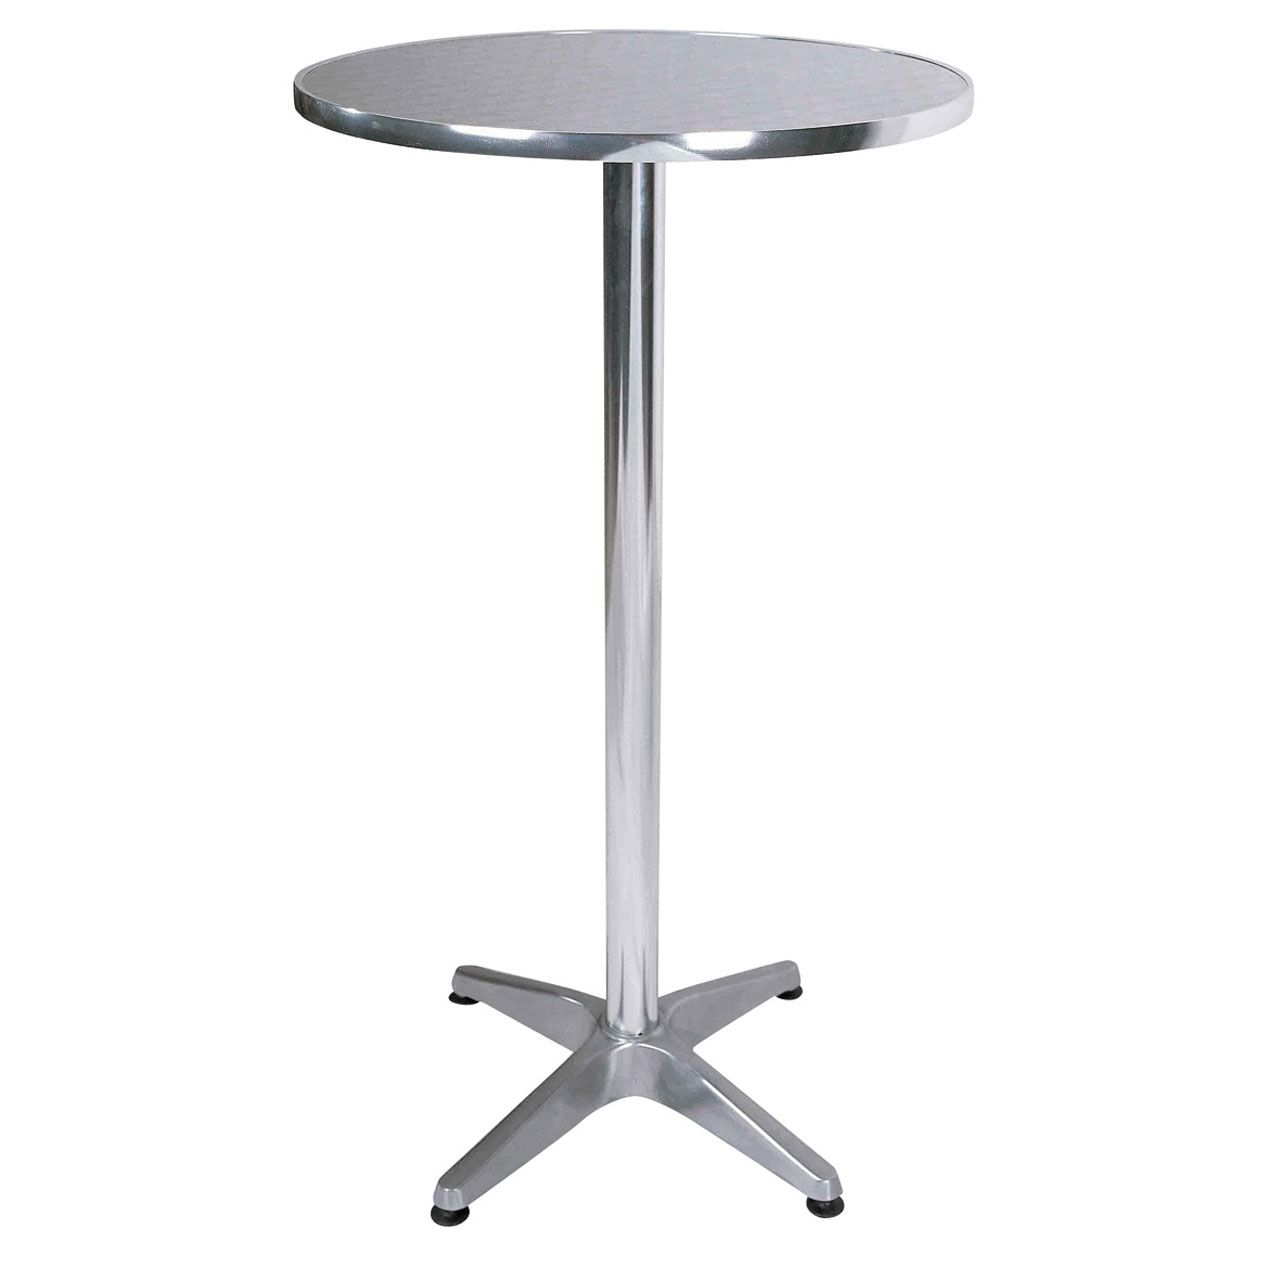 tall-round-bar-table-made-of-stainless-steel-with-round-eased-edge ...